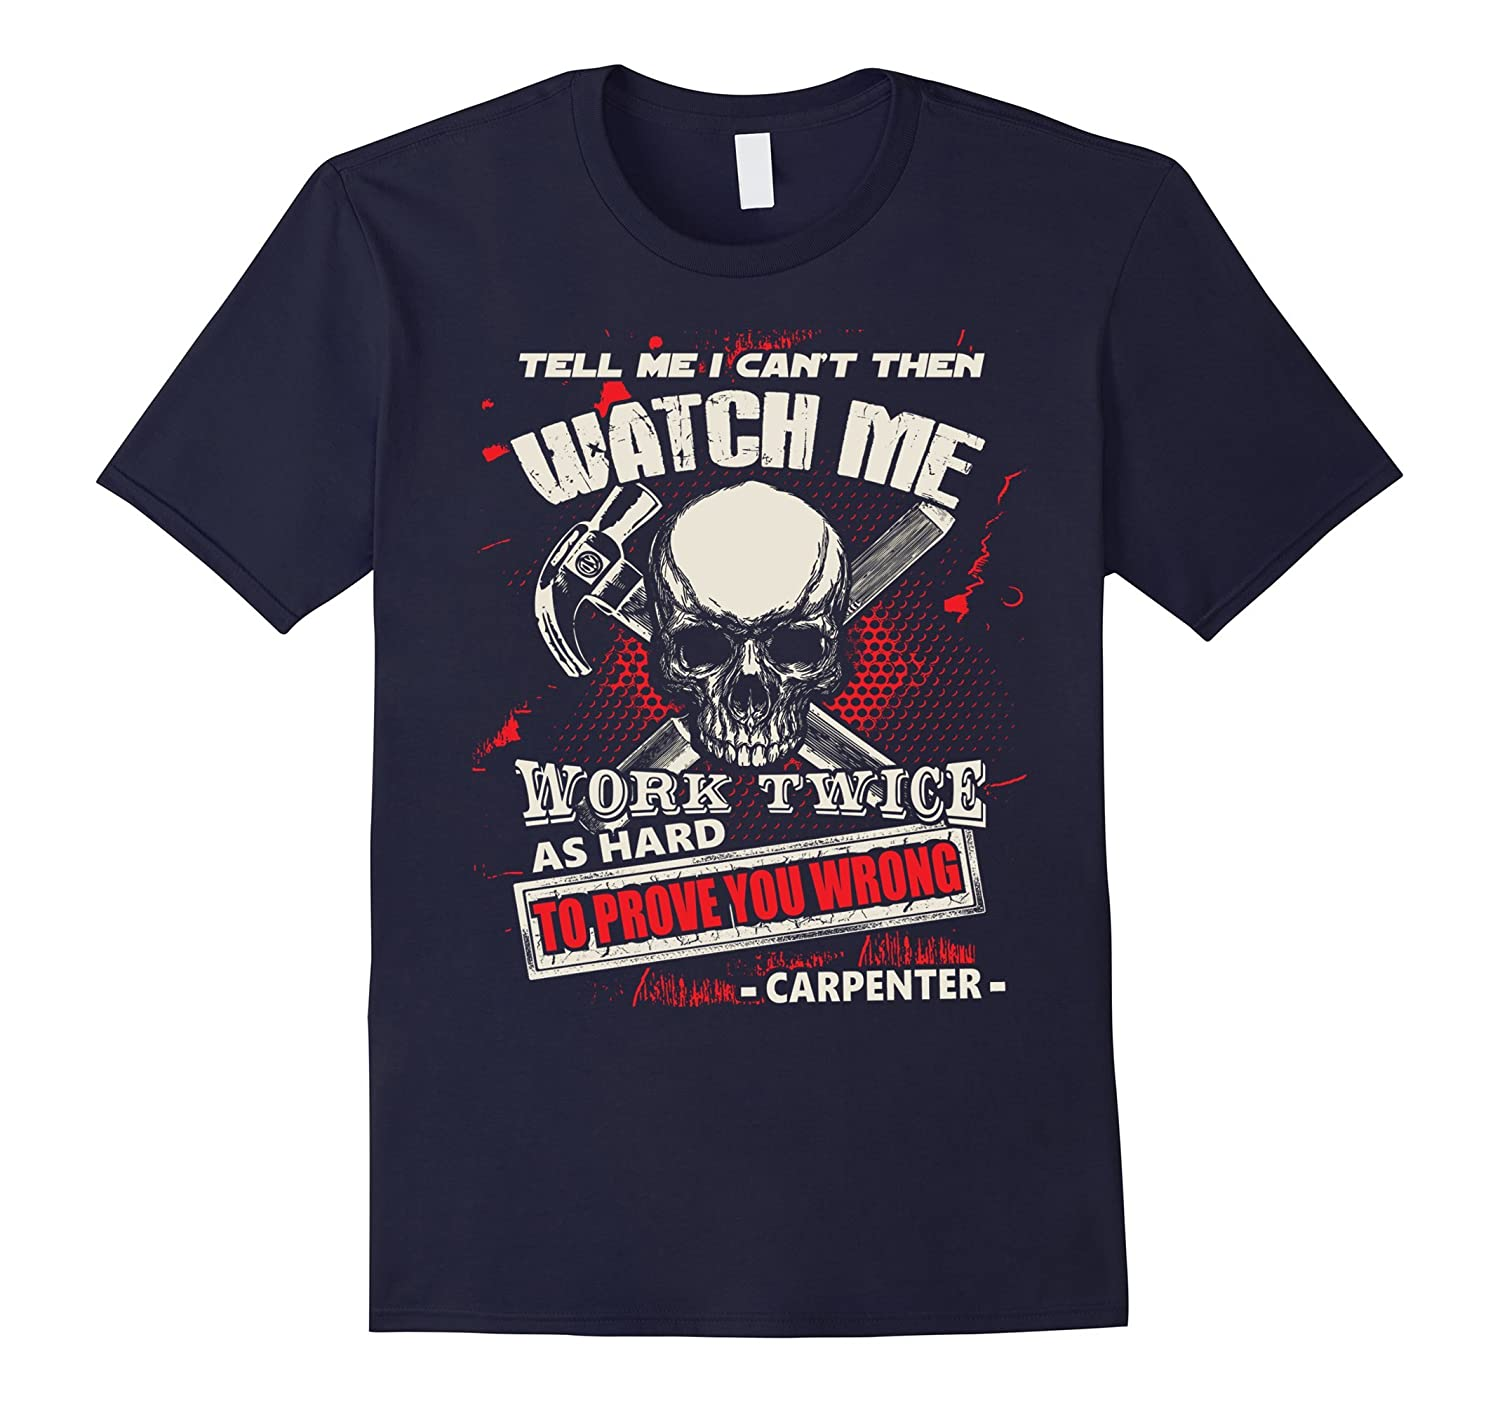 Carpenter Shirt - Work Twice As Hard To Prove You Wrong-TD